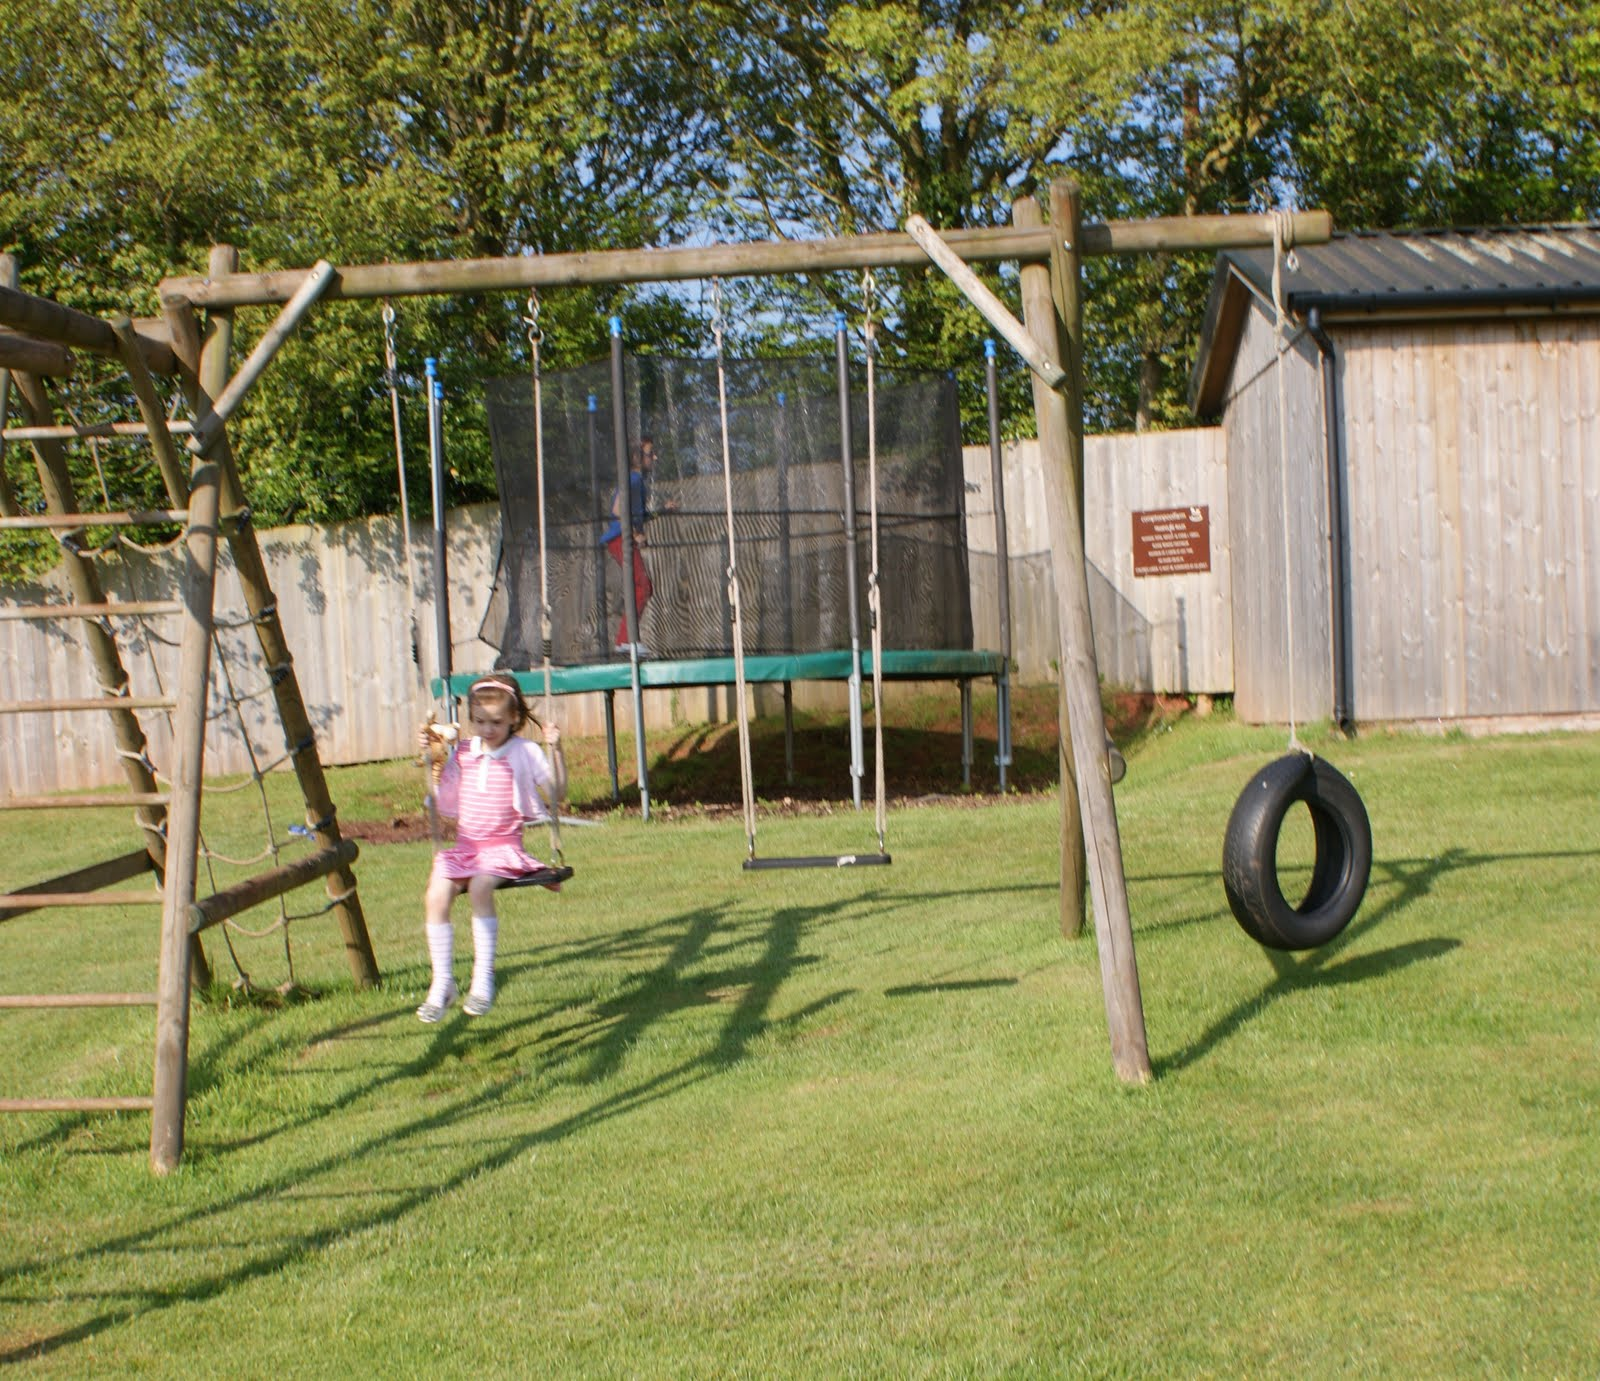 childrens playground at Compton Pool Farm